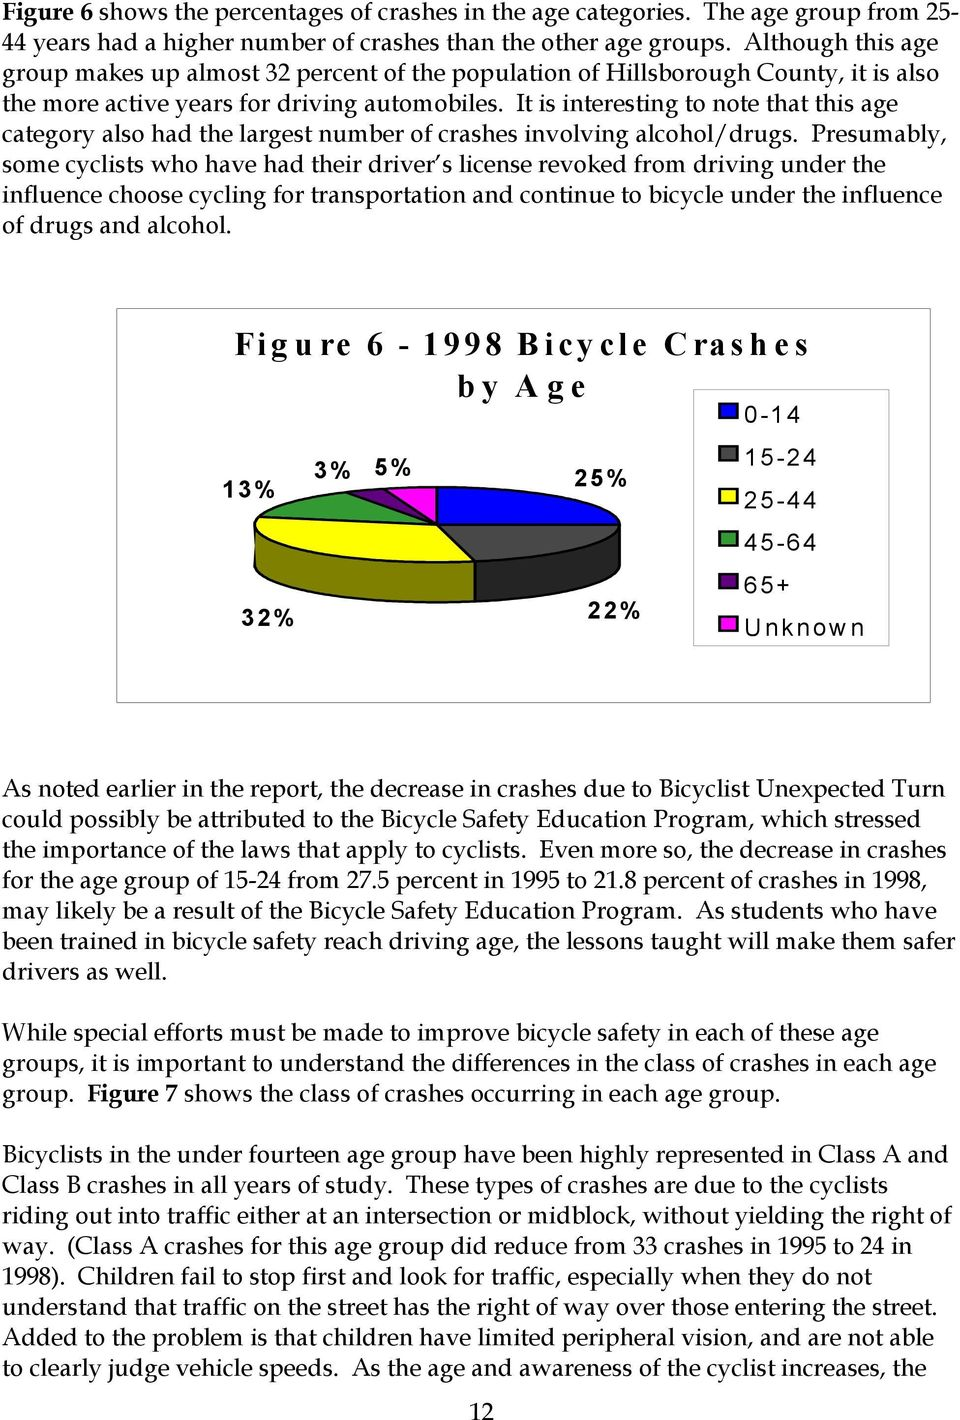 It is interesting to note that this age category also had the largest number of crashes involving alcohol/drugs.